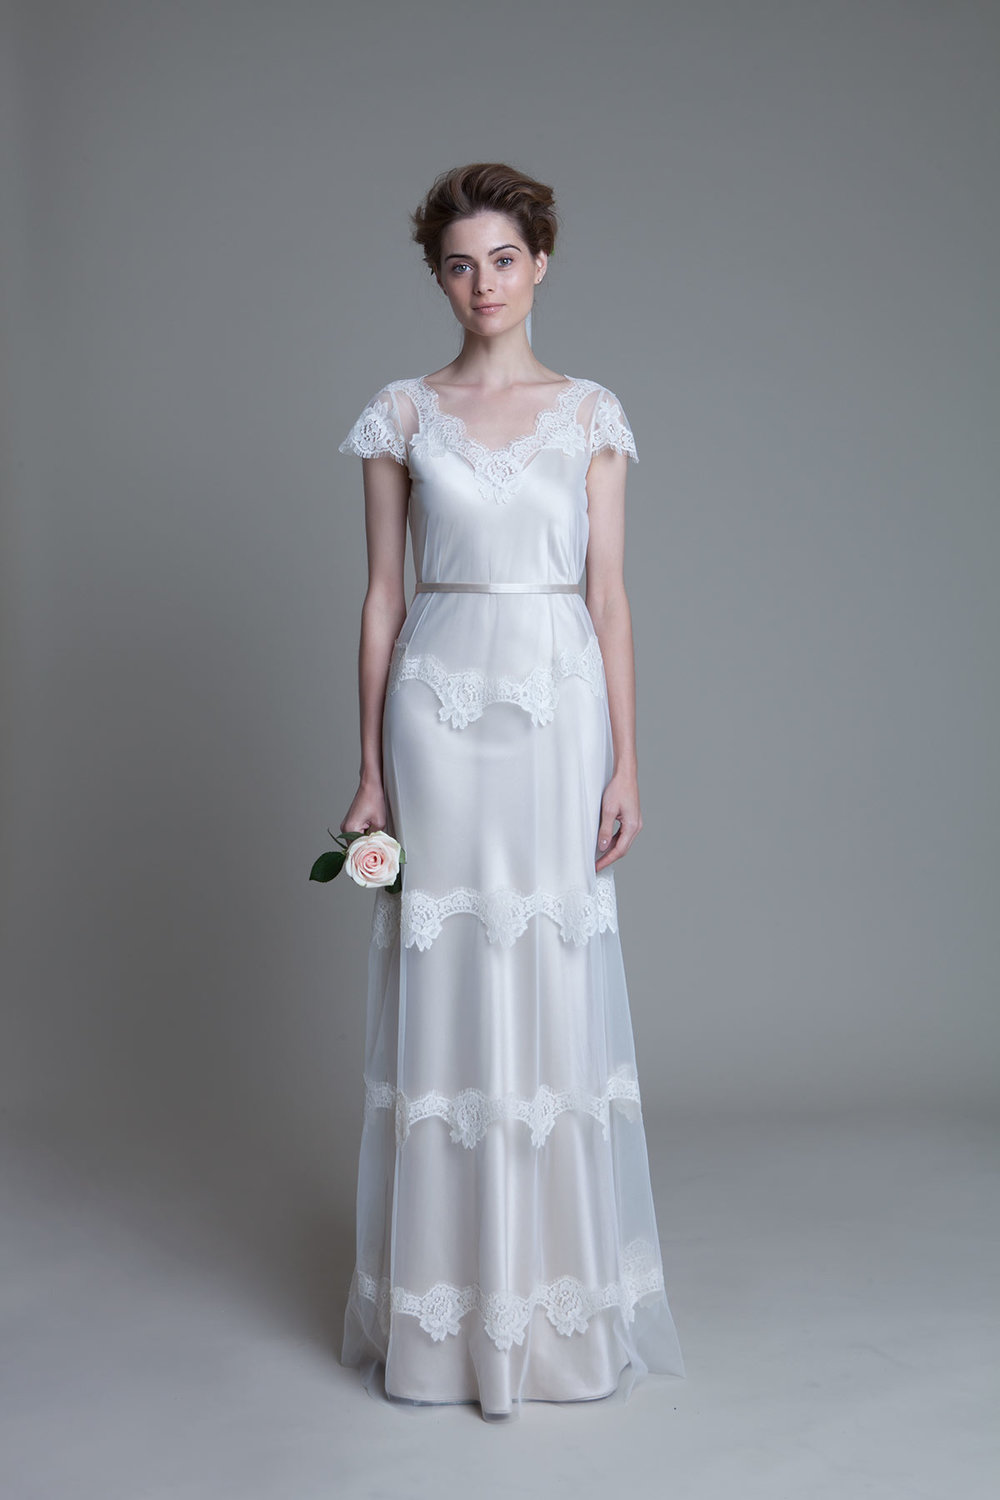 Emily Tulle and French Lace Dress with Narrow Belt Bridal Wedding Dress by Halfpenny London